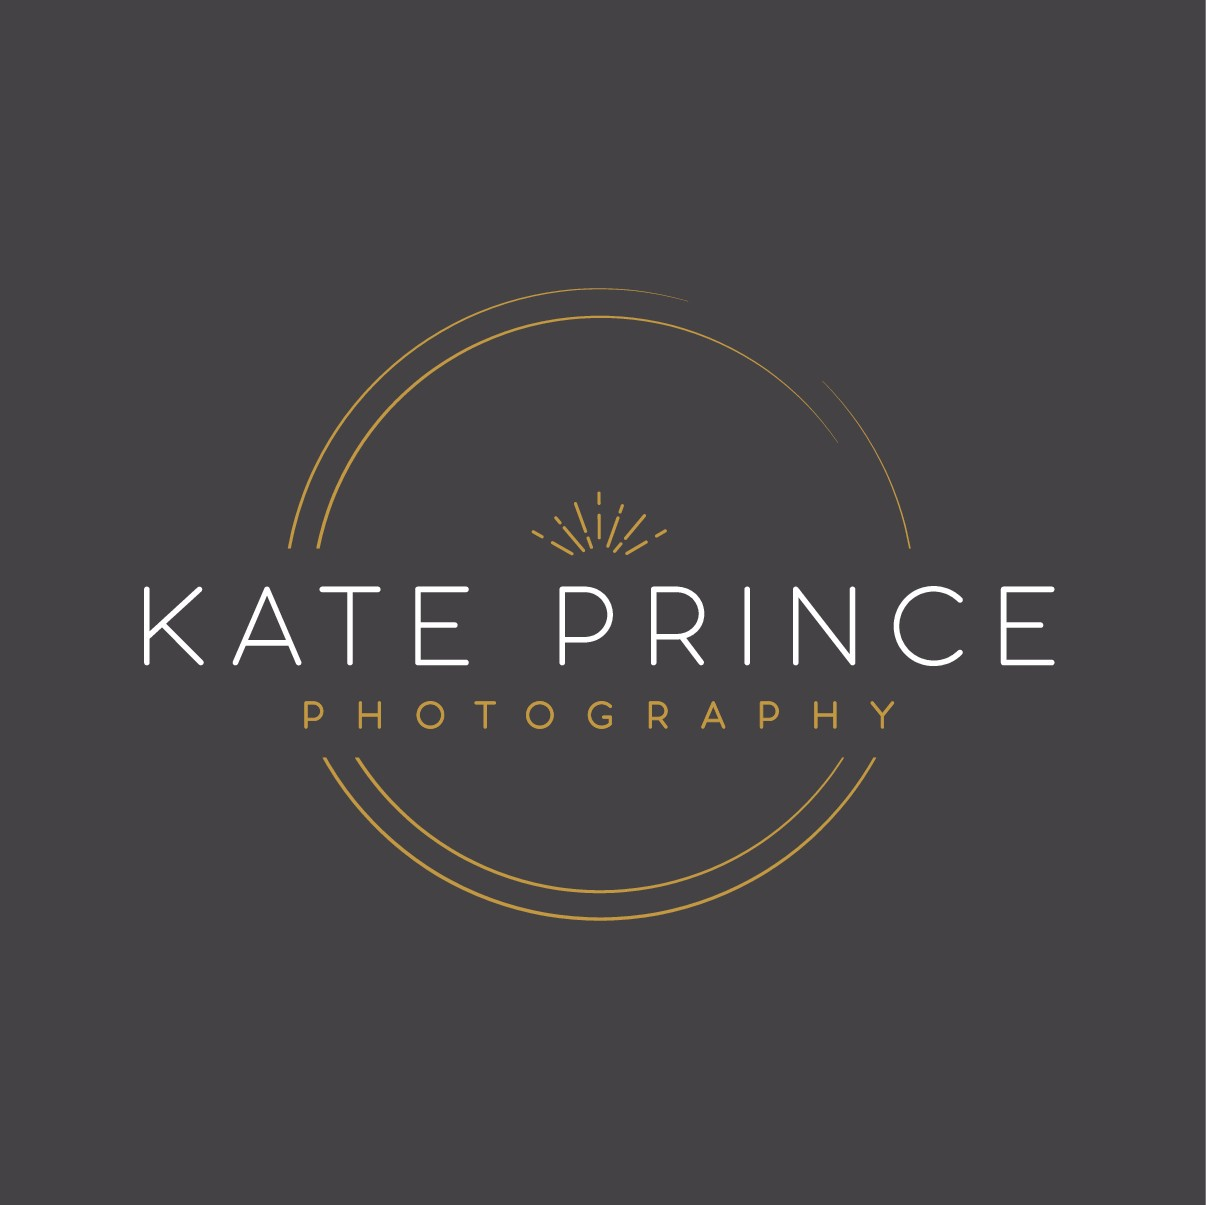 Business Card Design for Kate Prince Photography